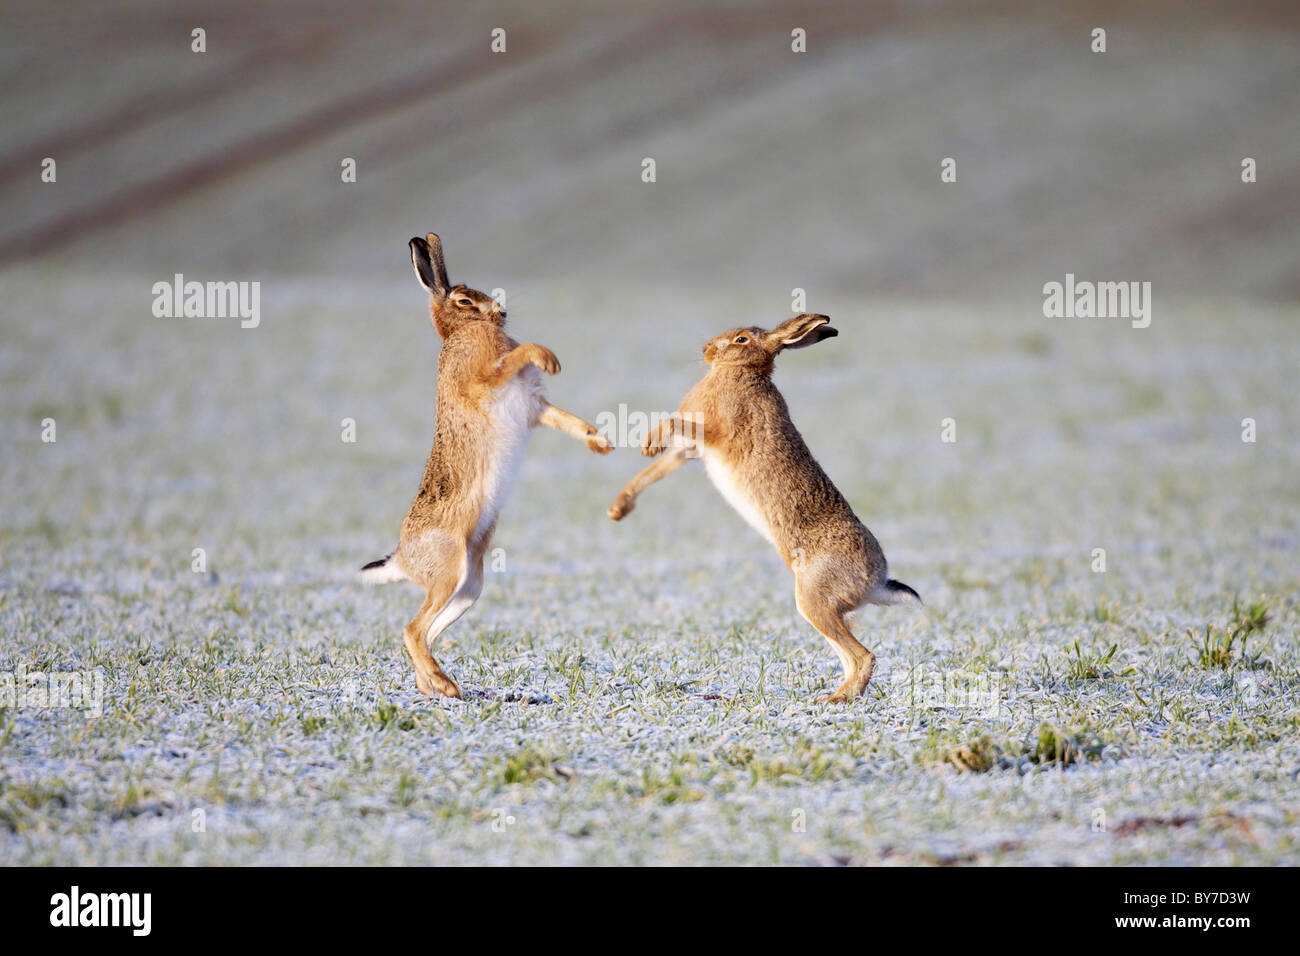 brown hares lepus europaeus boxing in frosty field - Stock Image